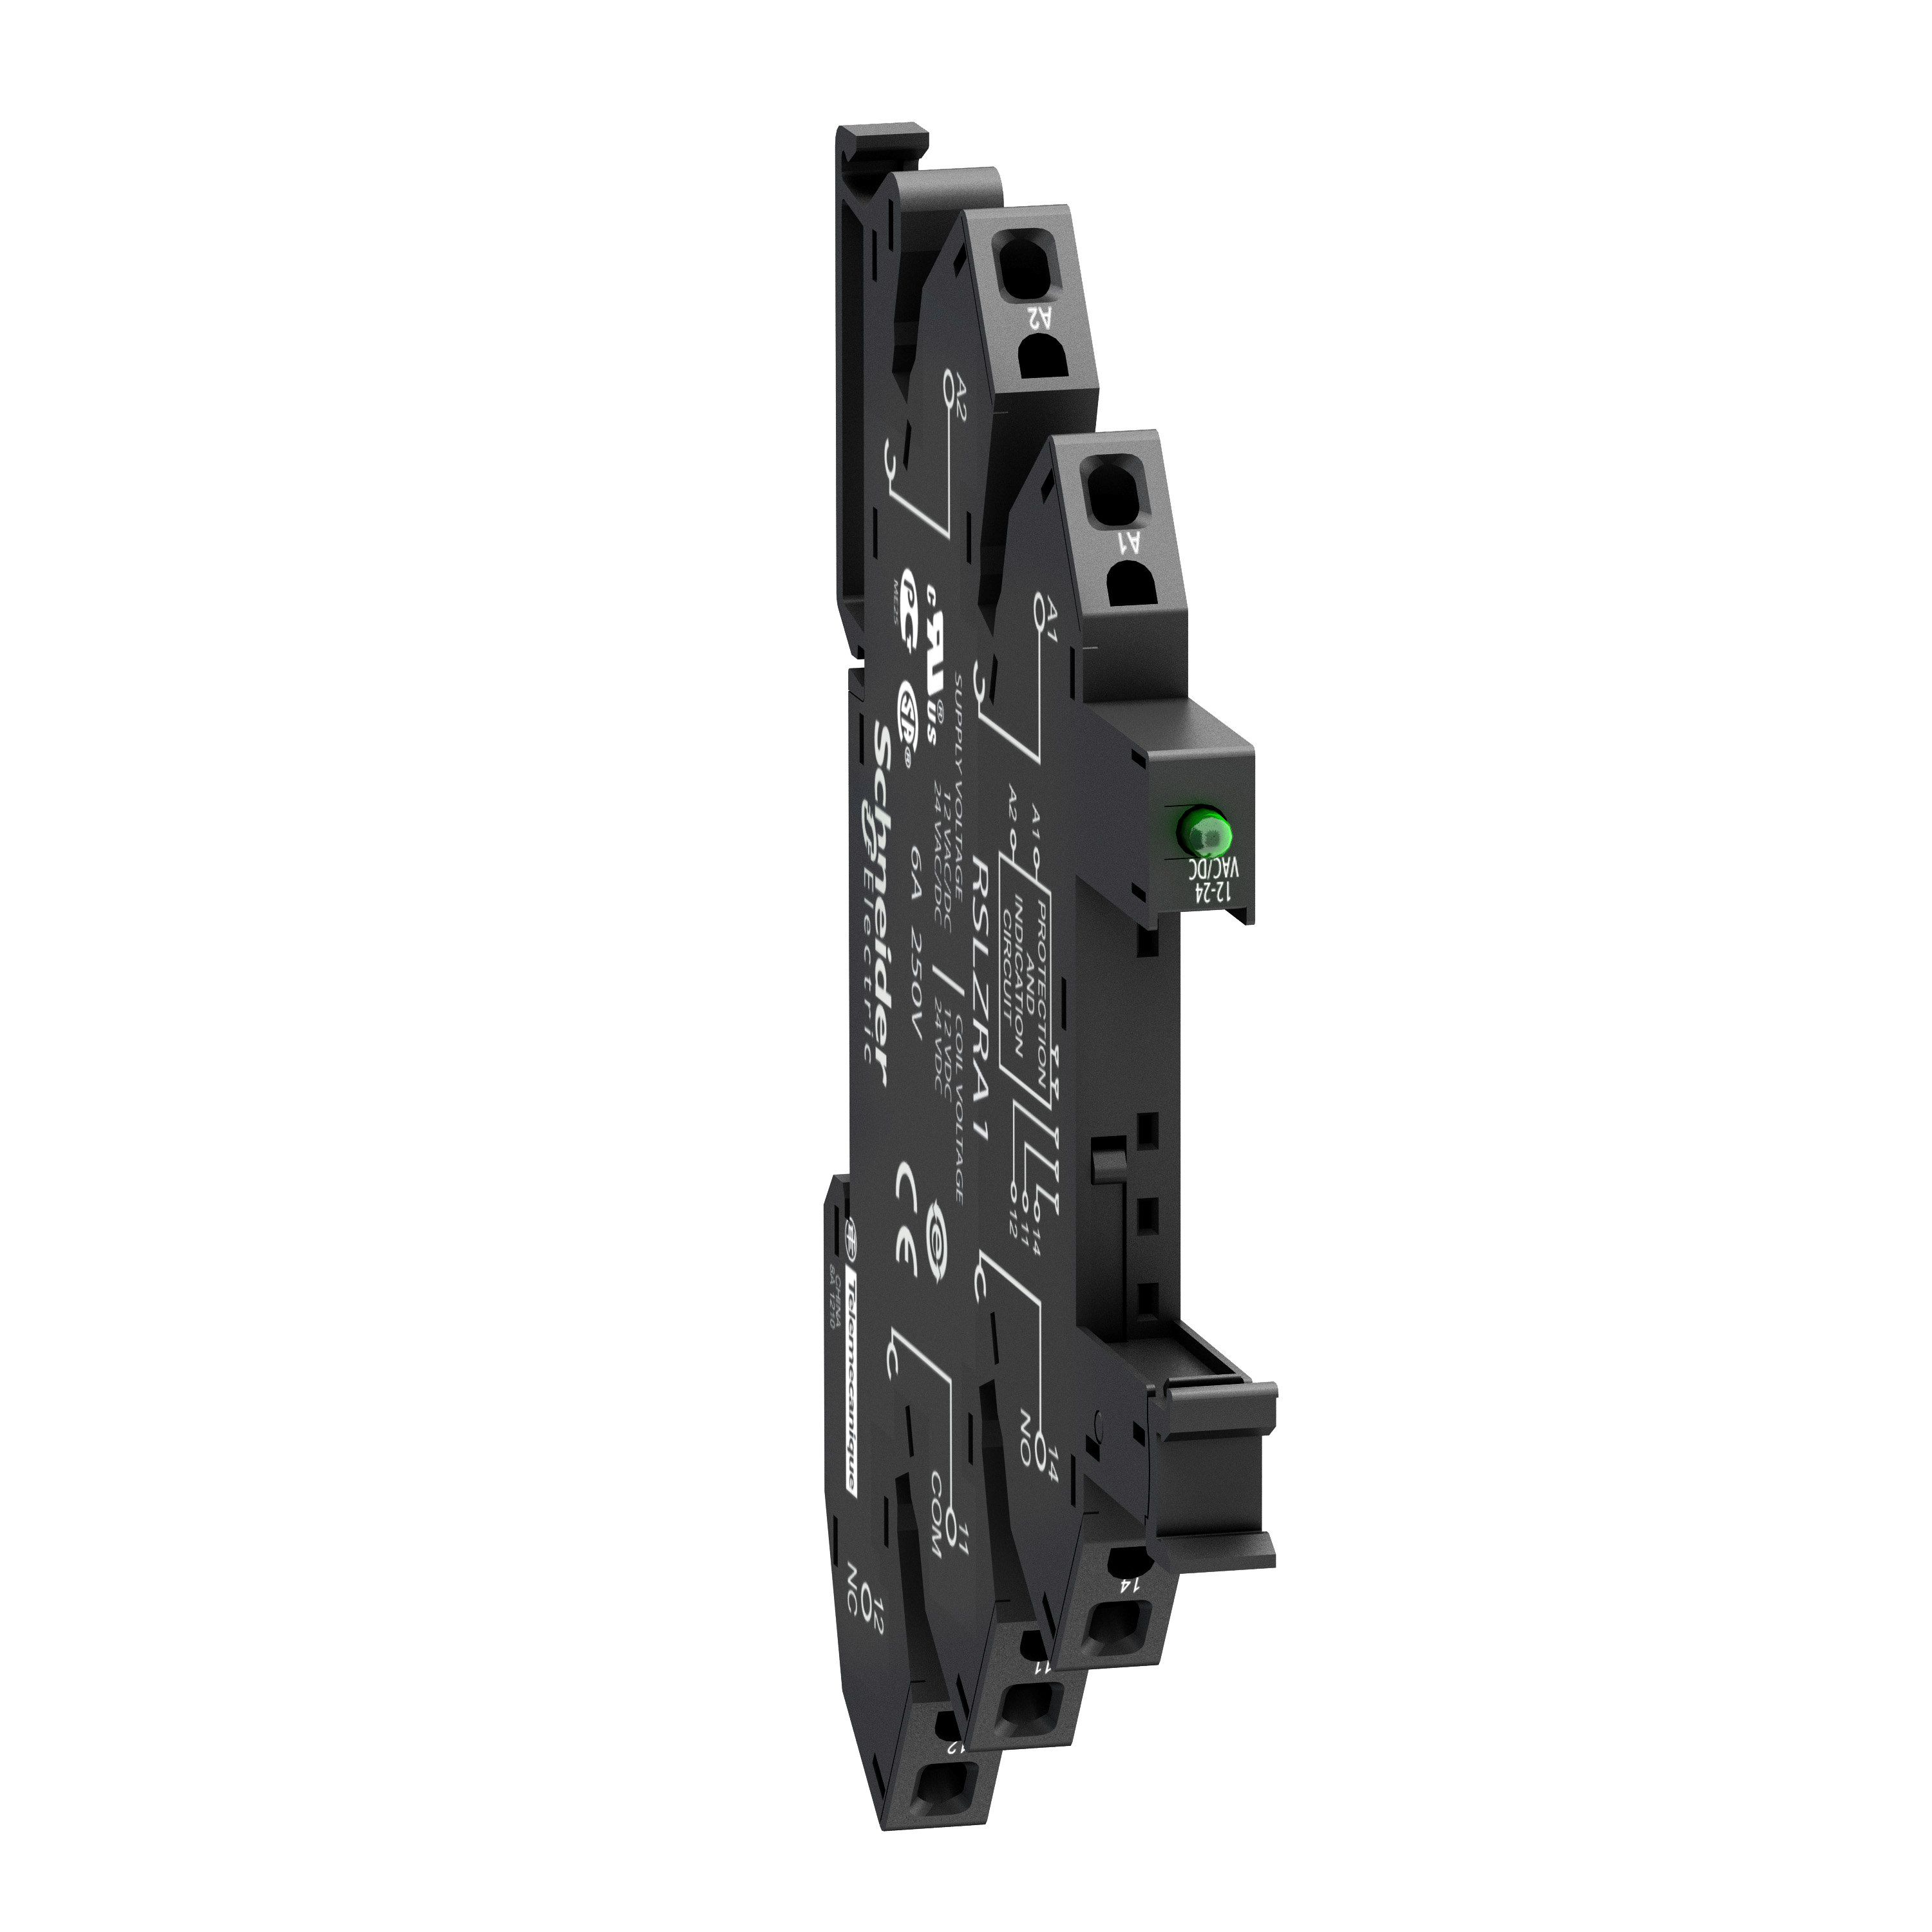 SQUARE D Spring socket equipped with LED and protection circuit, 110 V